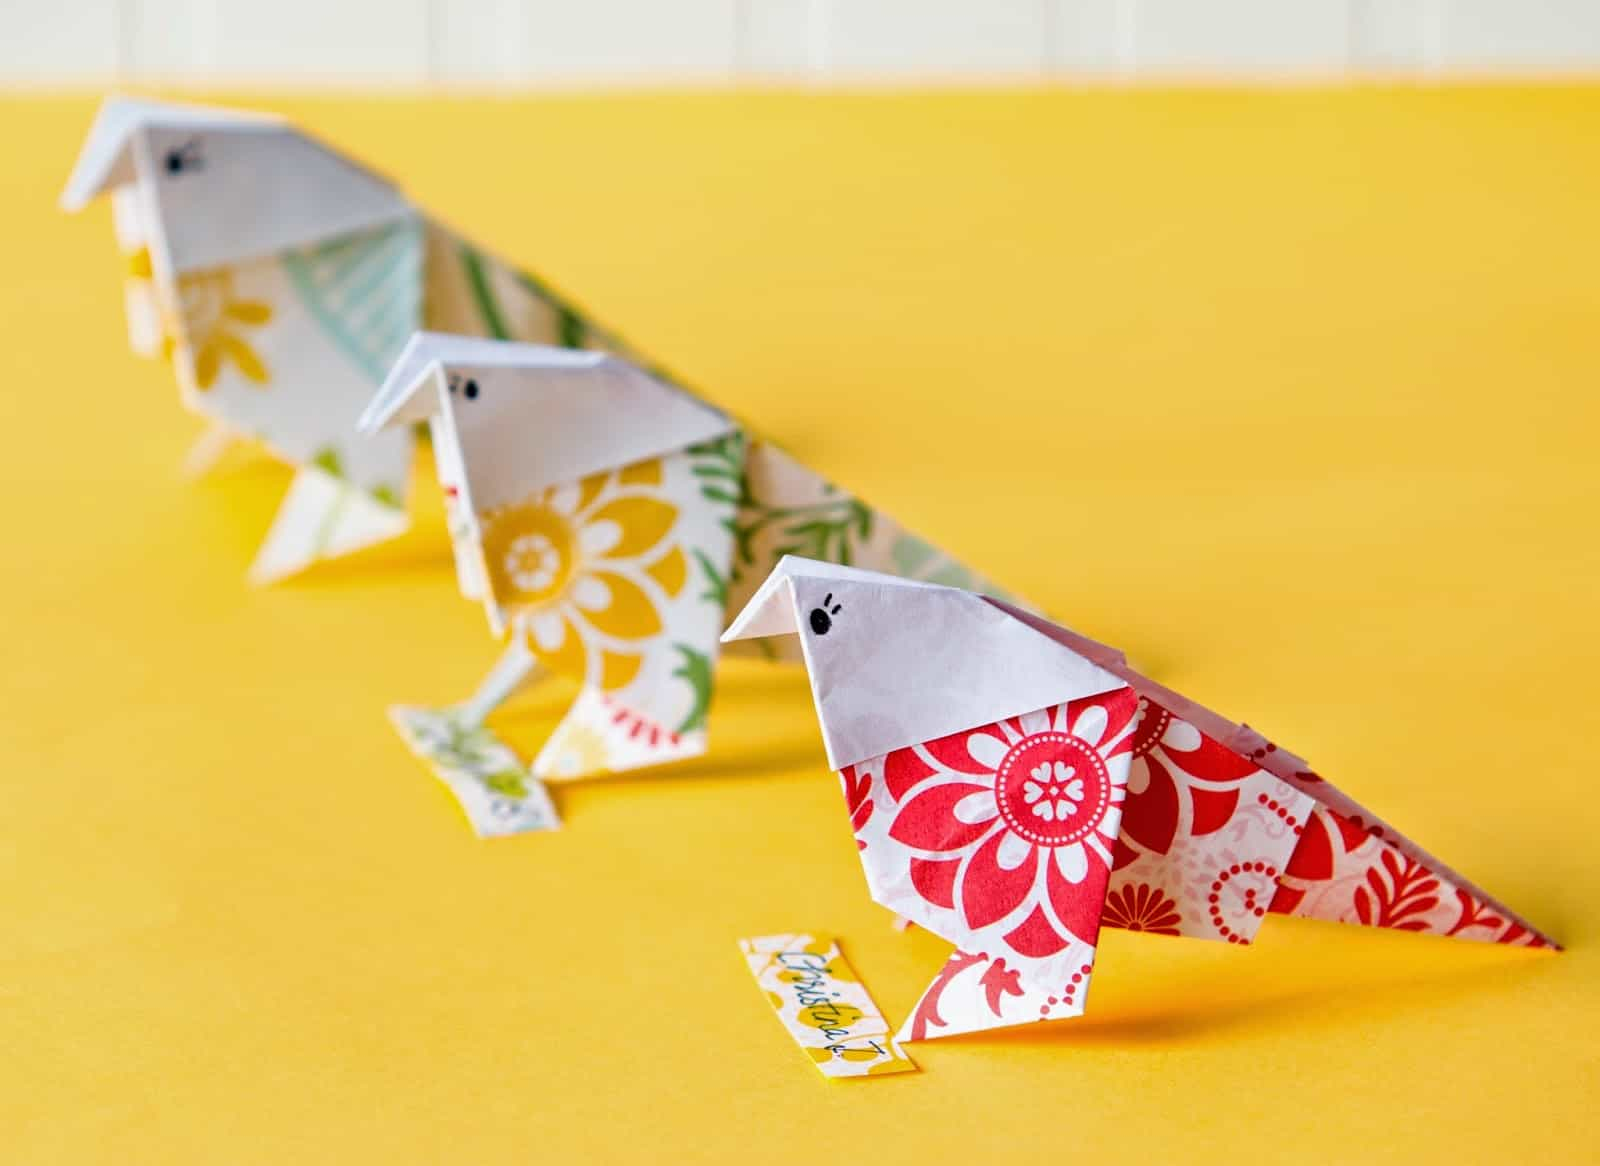 How To Make A Bird With Origami 12 Colorful Bird Crafts